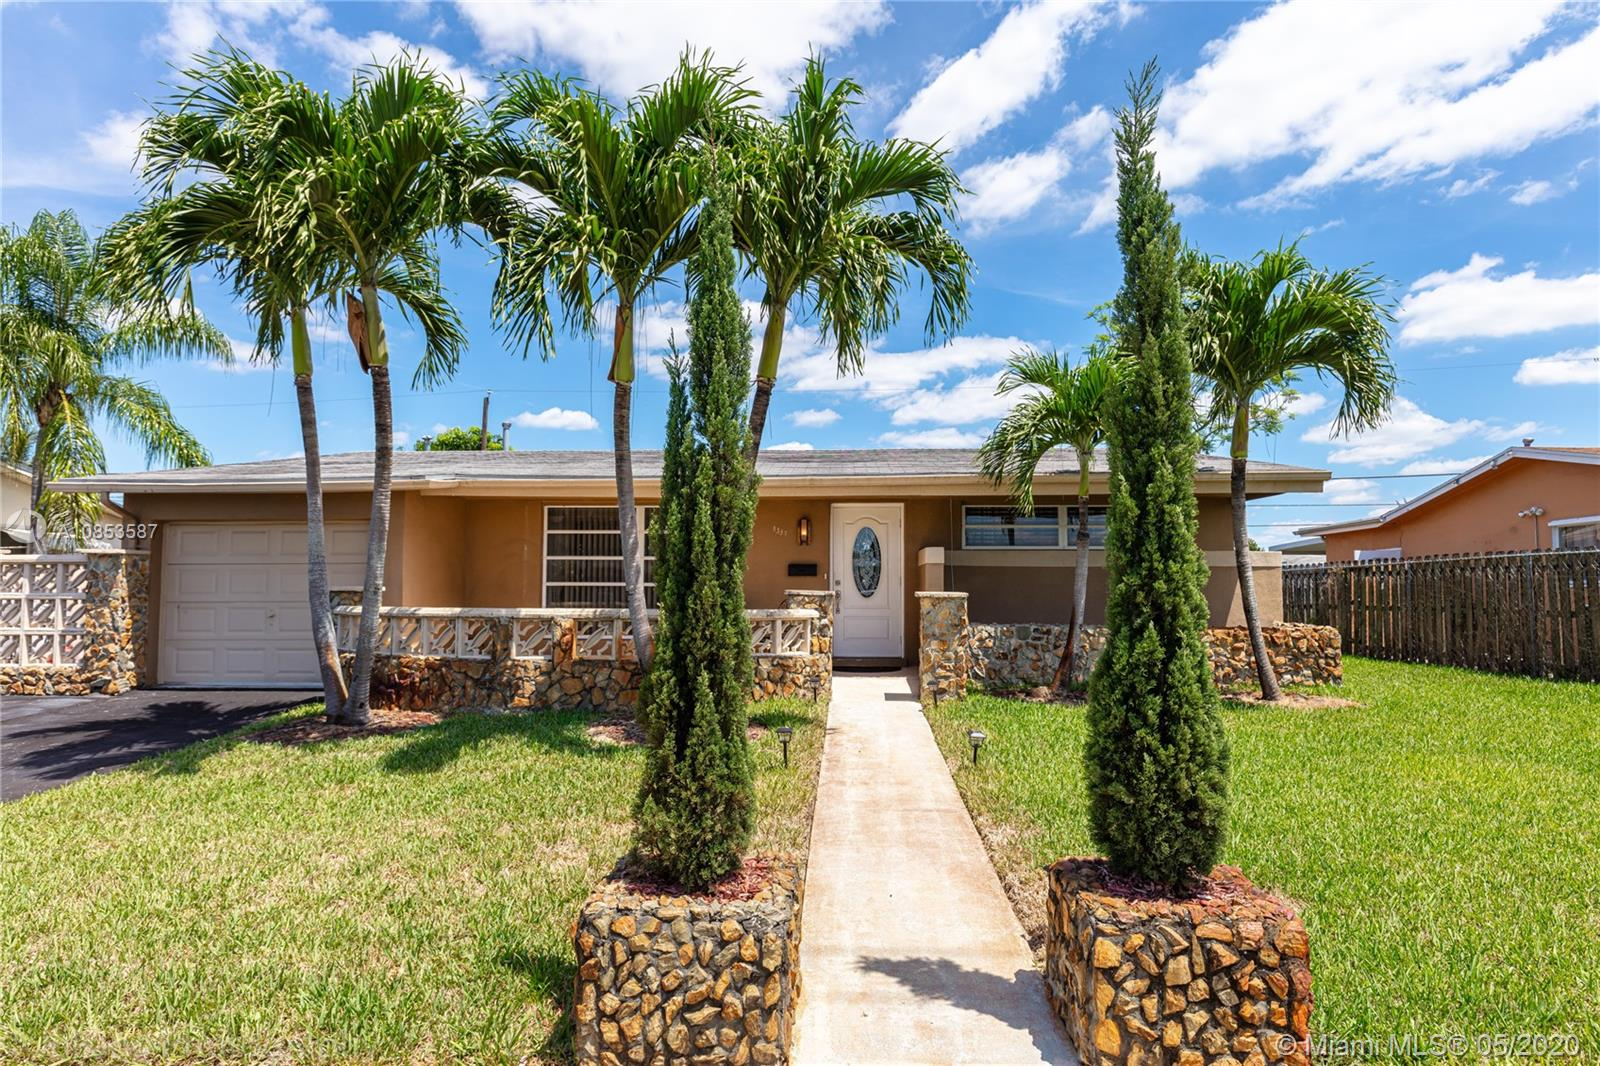 8337 NW 25th Ct, Sunrise, Florida 33322, 2 Bedrooms Bedrooms, ,2 BathroomsBathrooms,Residential,For Sale,8337 NW 25th Ct,A10853587